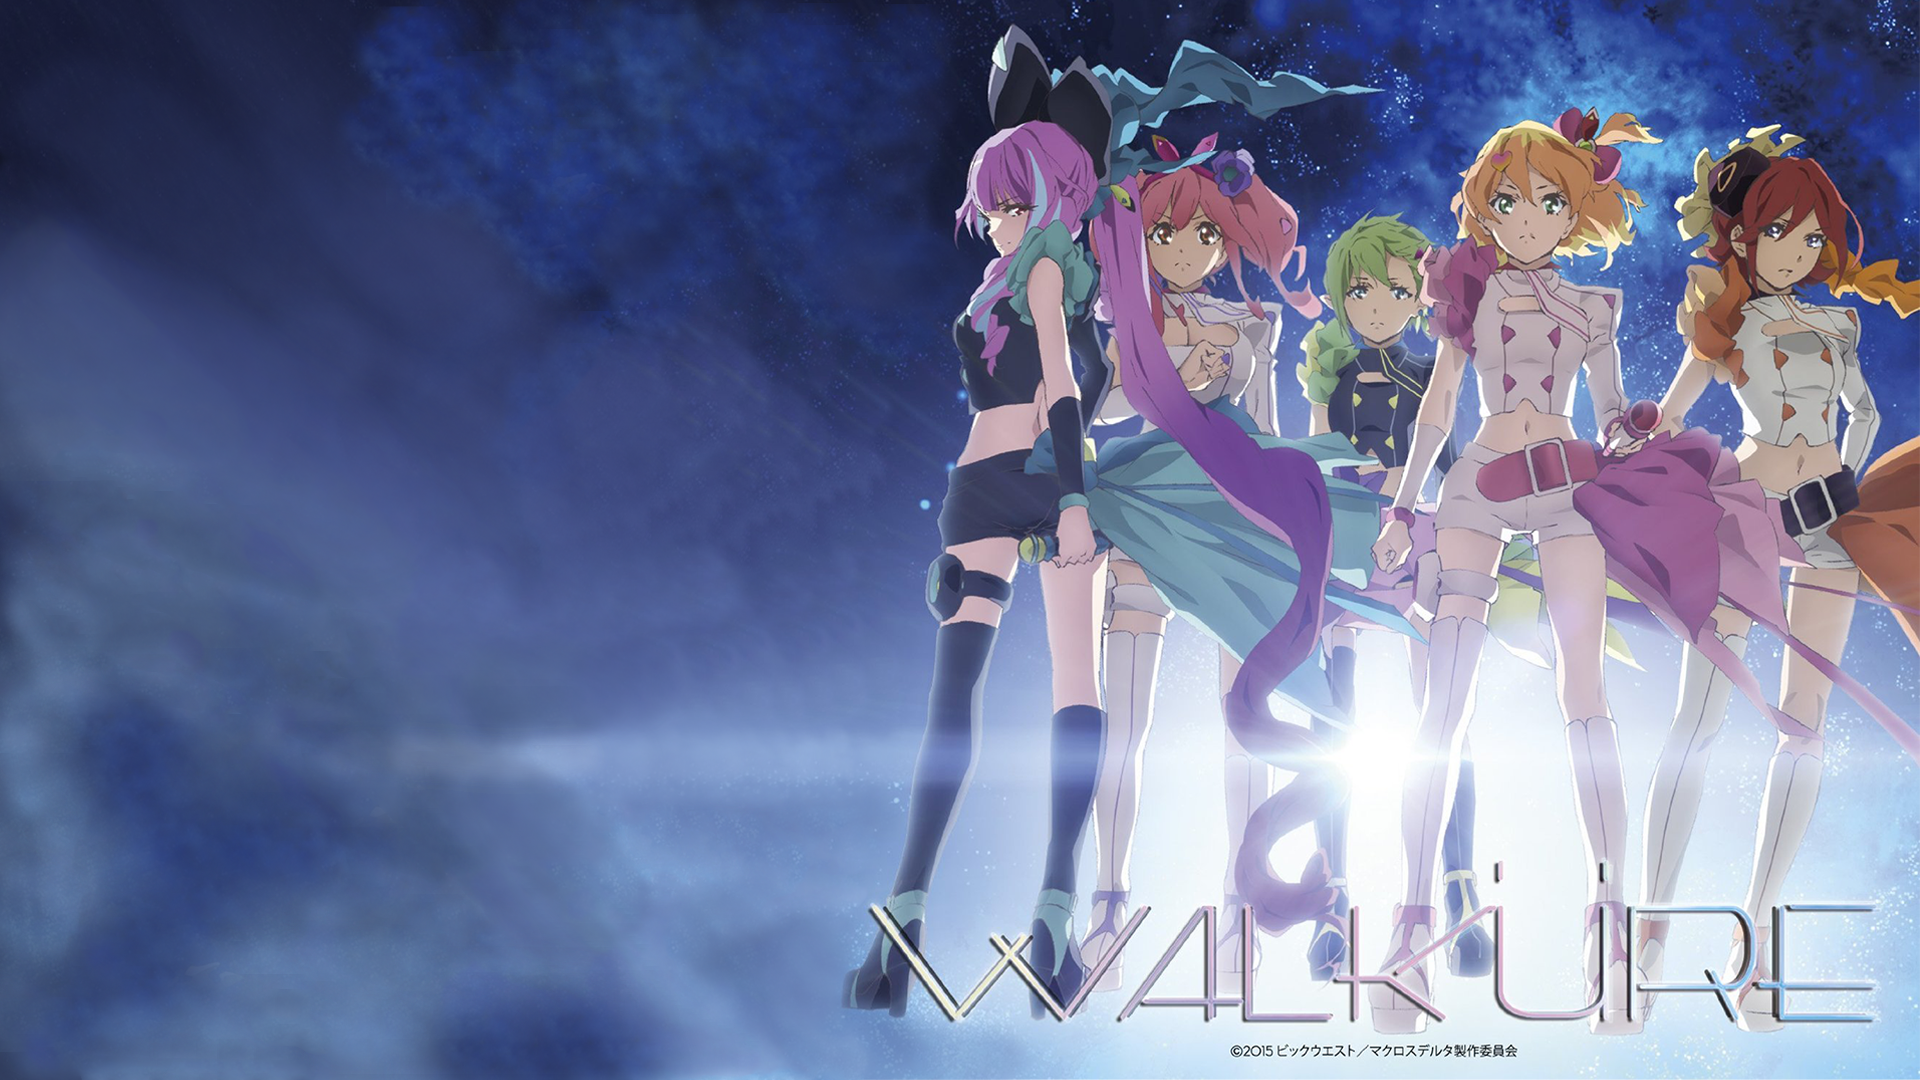 Walkure Macross Delta 1920x1080 Need Iphone 6s Plus